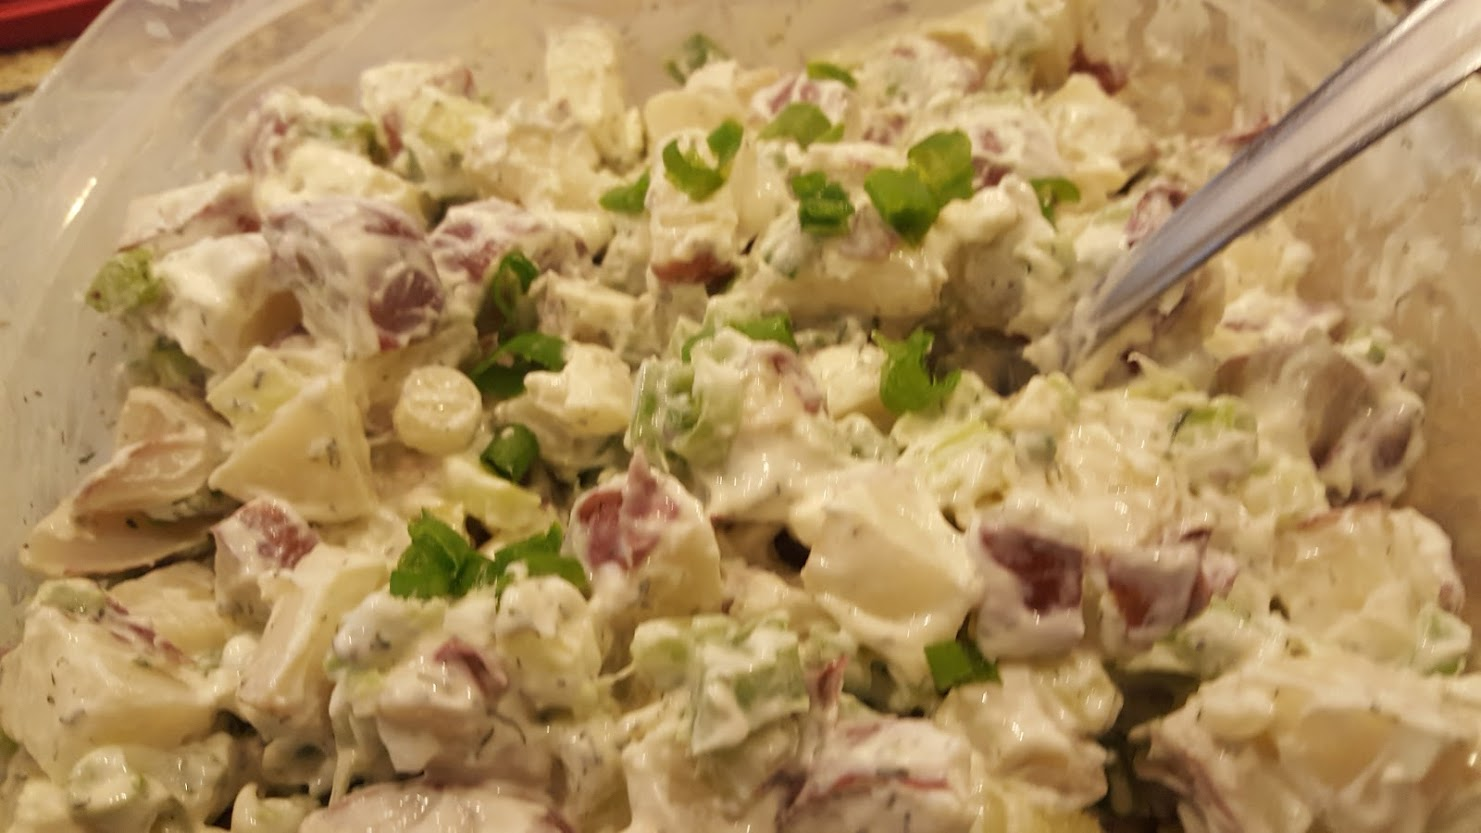 Potato Salad With Sour Cream And Dill